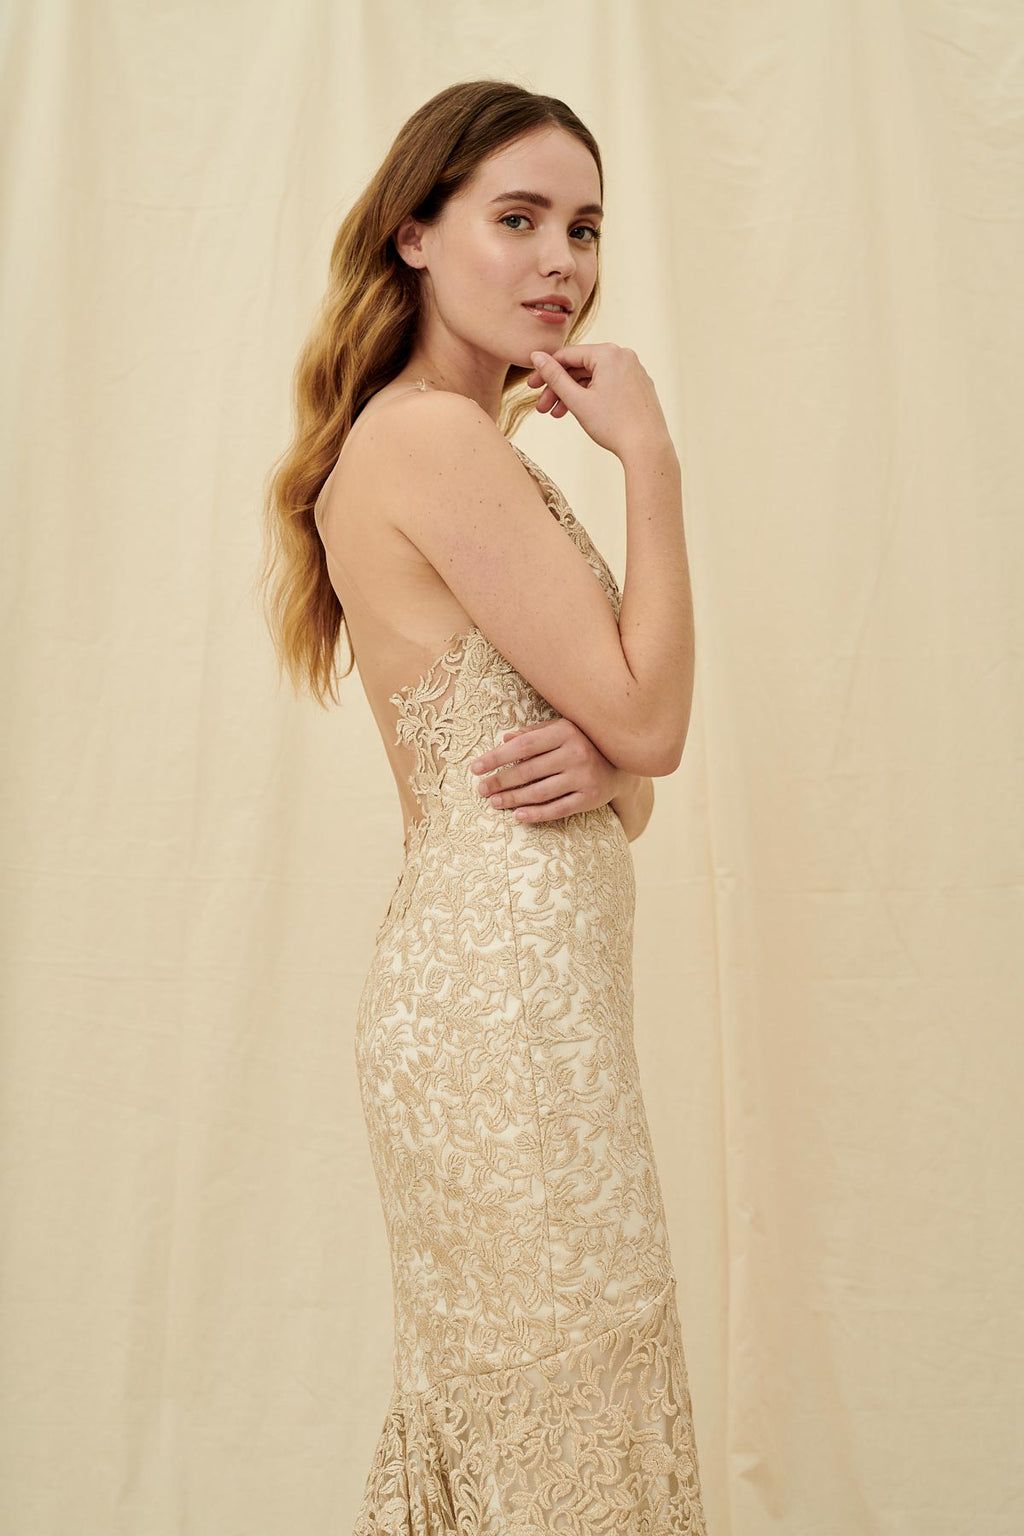 Shimmery golden wedding gown with a fitted skirt, train, and mesh illusion front and back for a backless look.